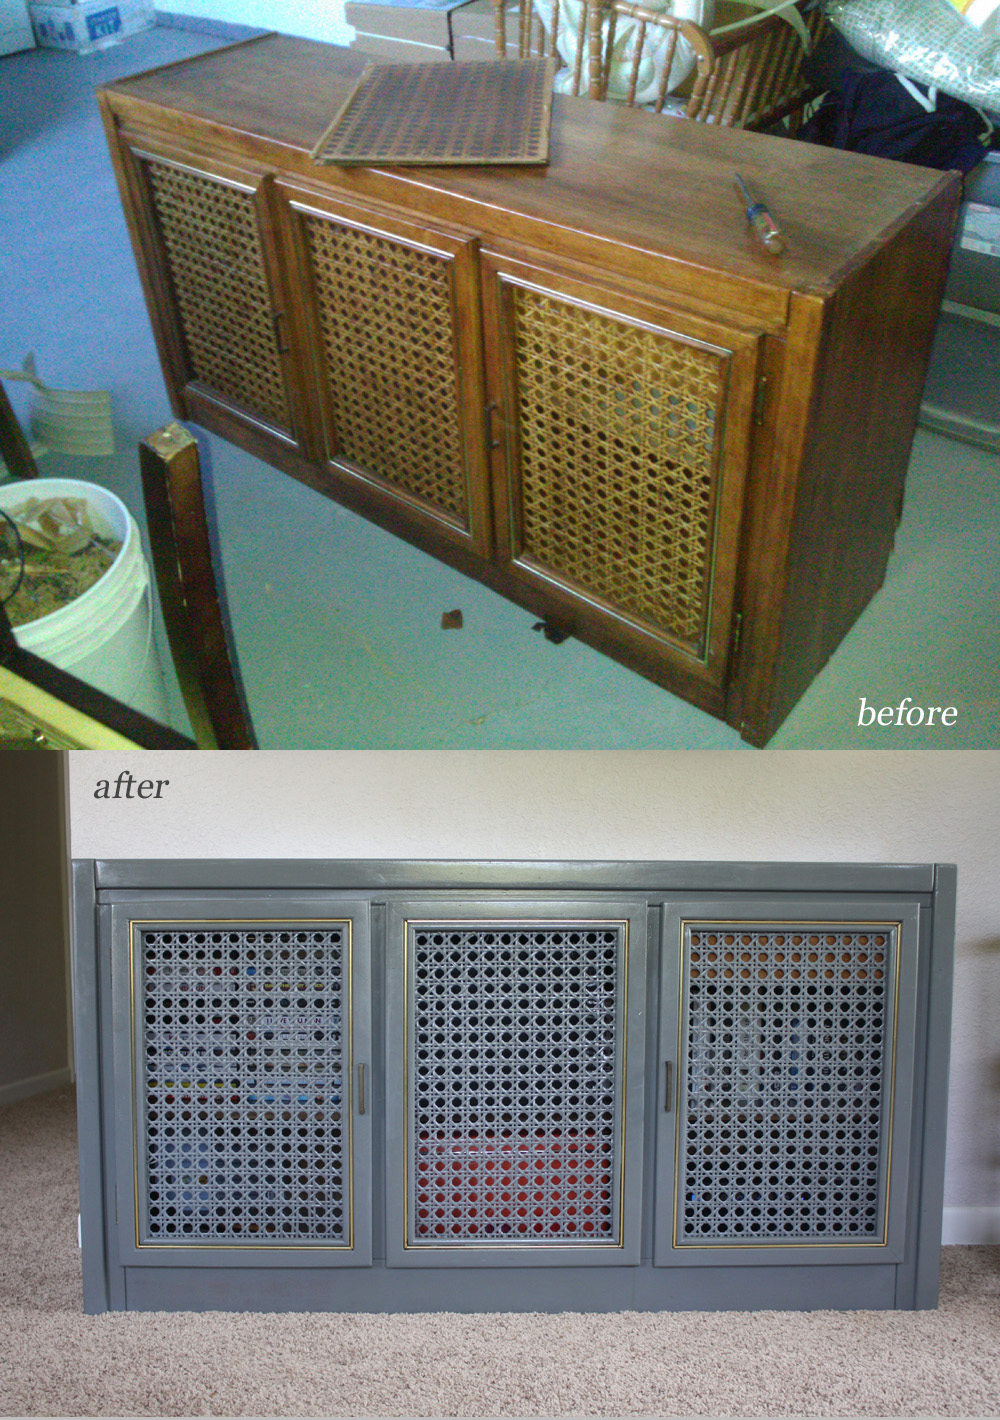 ber chic for cheap for the home before and after tv console. Black Bedroom Furniture Sets. Home Design Ideas